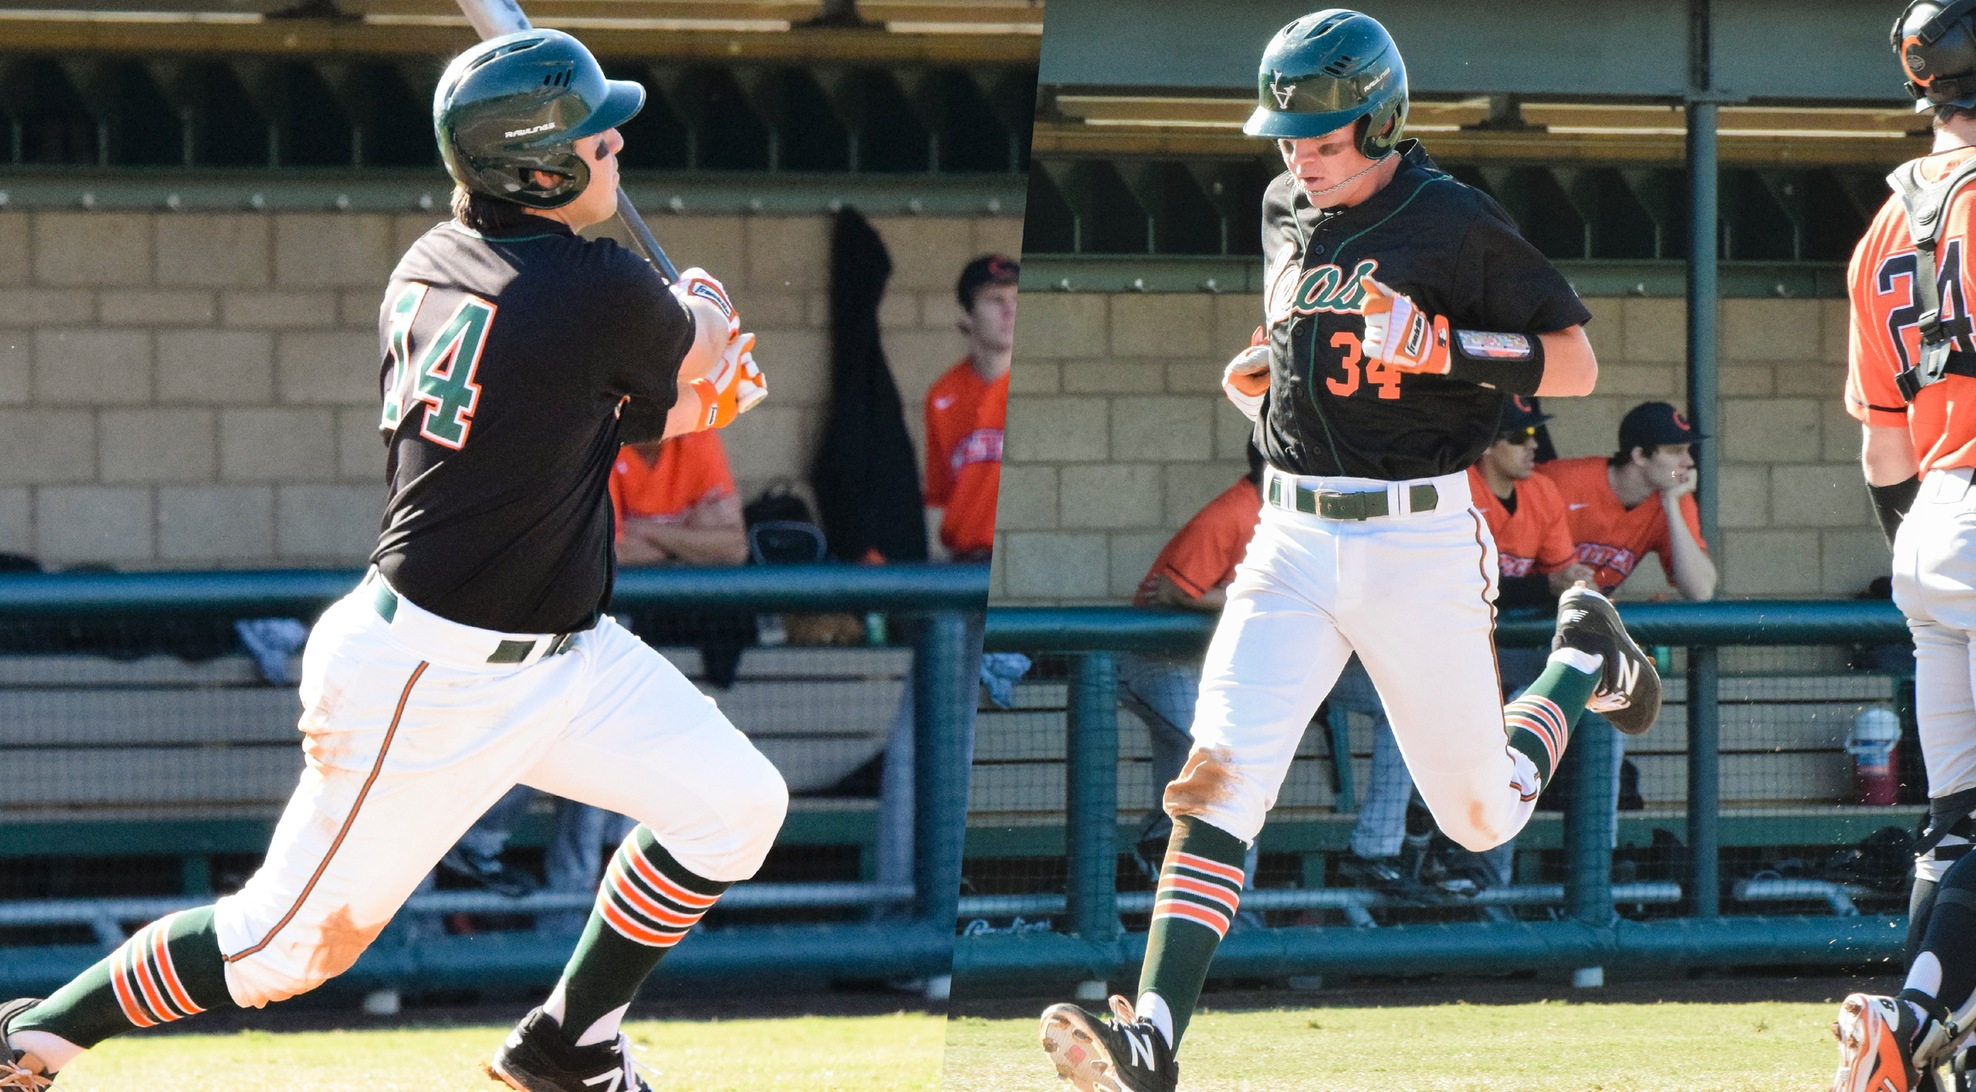 Peres, Thomas named First Team All-SCIAC